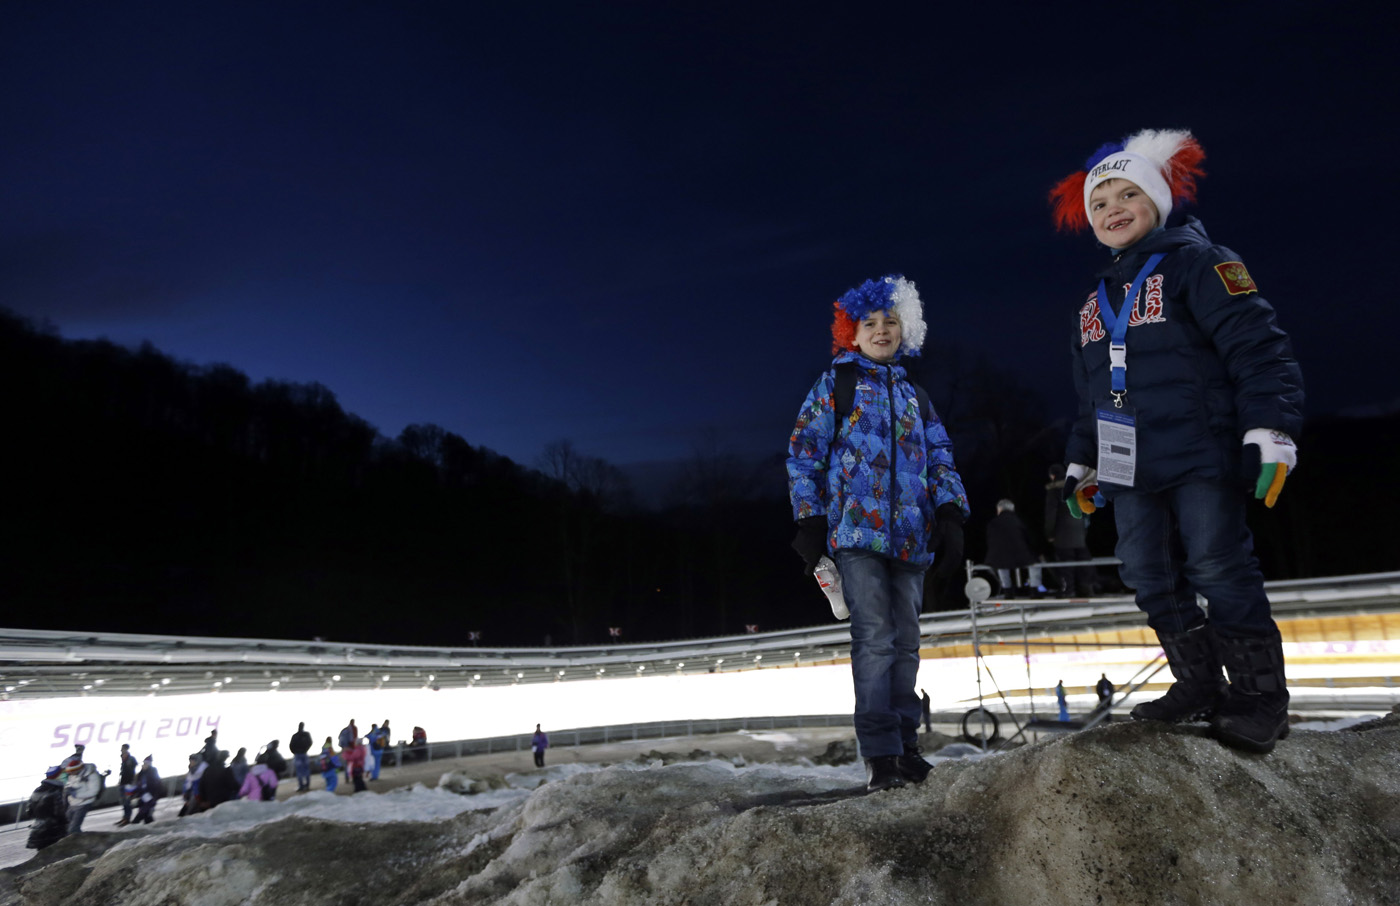 Children wait for the start of the final run during the men's doubles luge at the 2014 Winter Olympics, on Feb. 12, 2014, in Krasnaya Polyana, Russia.